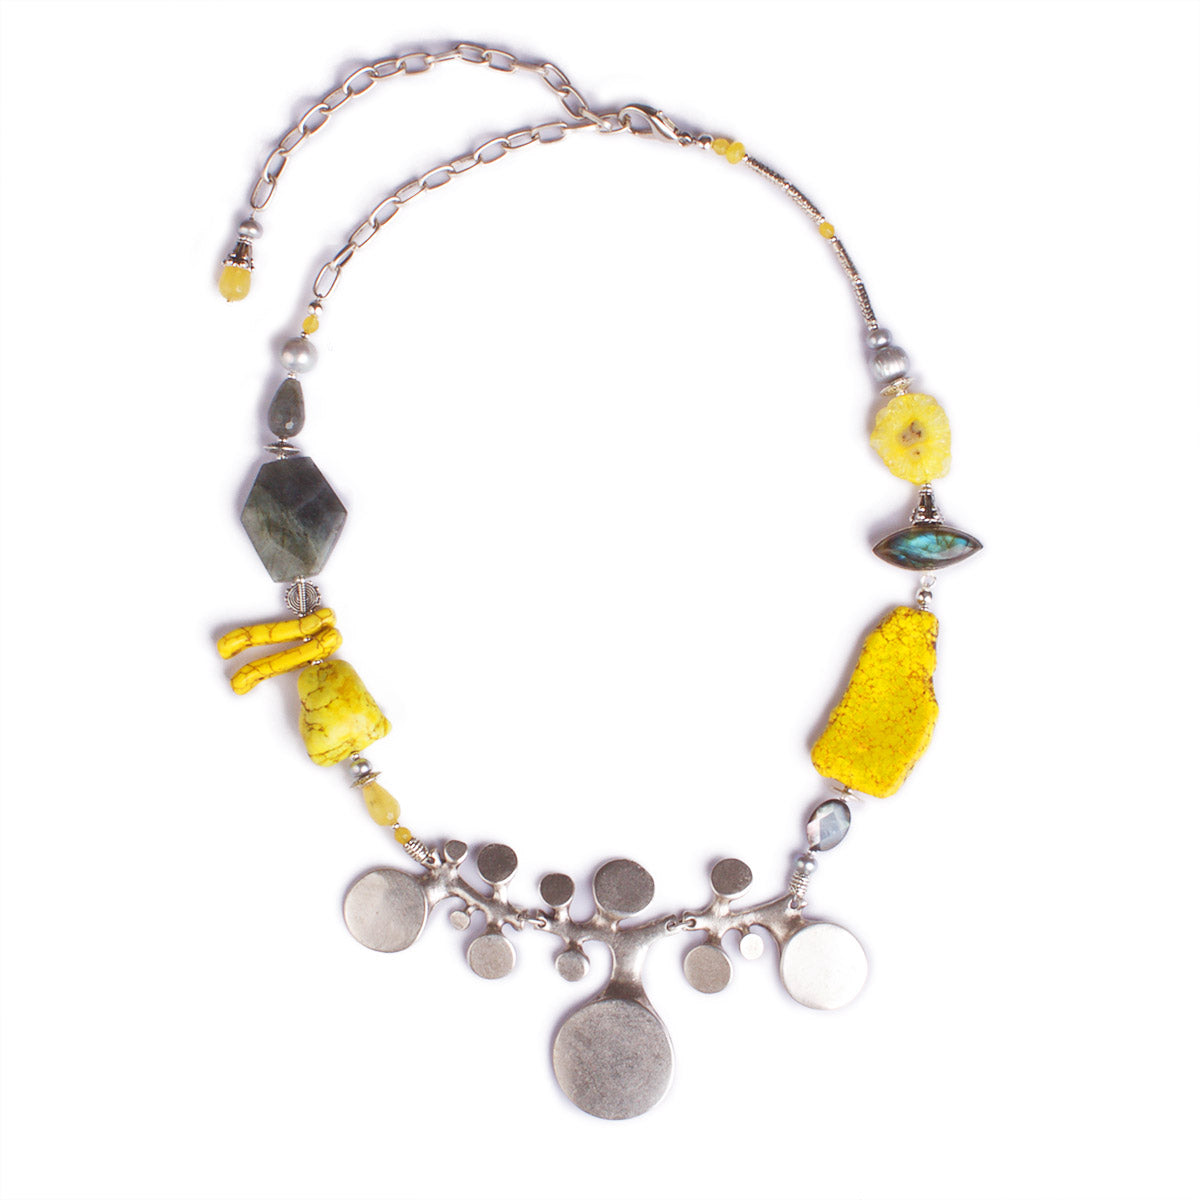 N°462 The Sunkissed 5th Dimension Statement Necklace